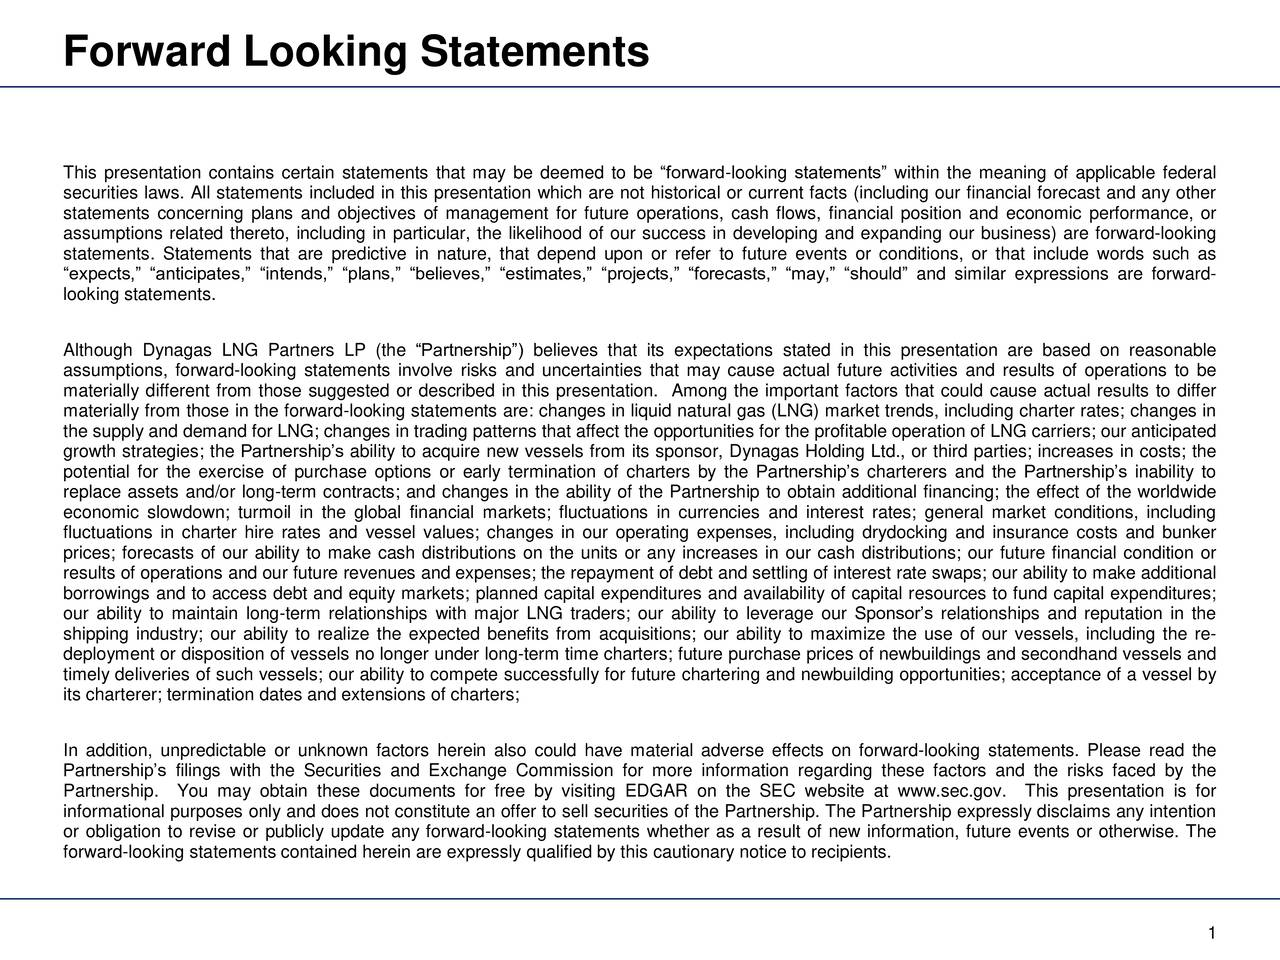 This presentation contains certain statements that may be deemed to be forward-looking statements within the meaning of applicable federal securities laws. All statements included in this presentation which are not historical or current facts (including our financial forecast and any other statements concerning plans and objectives of management for future operations, cash flows, financial position and economic performance, or assumptions related thereto, including in particular, the likelihood of our success in developing and expanding our business) are forward-looking statements. Statements that are predictive in nature, that depend upon or refer to future events or conditions, or that include words such as expects, anticipates, intends, plans, believes, estimates, projects, forecasts, may, should and similar expressions are forward- looking statements. Although Dynagas LNG Partners LP (the Partnership) believes that its expectations stated in this presentation are based on reasonable assumptions, forward-looking statements involve risks and uncertainties that may cause actual future activities and results of operations to be materially different from those suggested or described in this presentation. Among the important factors that could cause actual results to differ materially from those in the forward-looking statements are: changes in liquid natural gas (LNG) market trends, including charter rates; changes in the supply and demand for LNG; changes in trading patterns that affect the opportunities for the profitable operation of LNG carriers; our anticipated growth strategies; the Partnerships ability to acquire new vessels from its sponsor, Dynagas Holding Ltd., or third parties; increases in costs; the potential for the exercise of purchase options or early termination of charters by the Partnerships charterers and the Partnerships inability to replace assets and/or long-term contracts; and changes in the ability of the Partnership to obtain additional fina